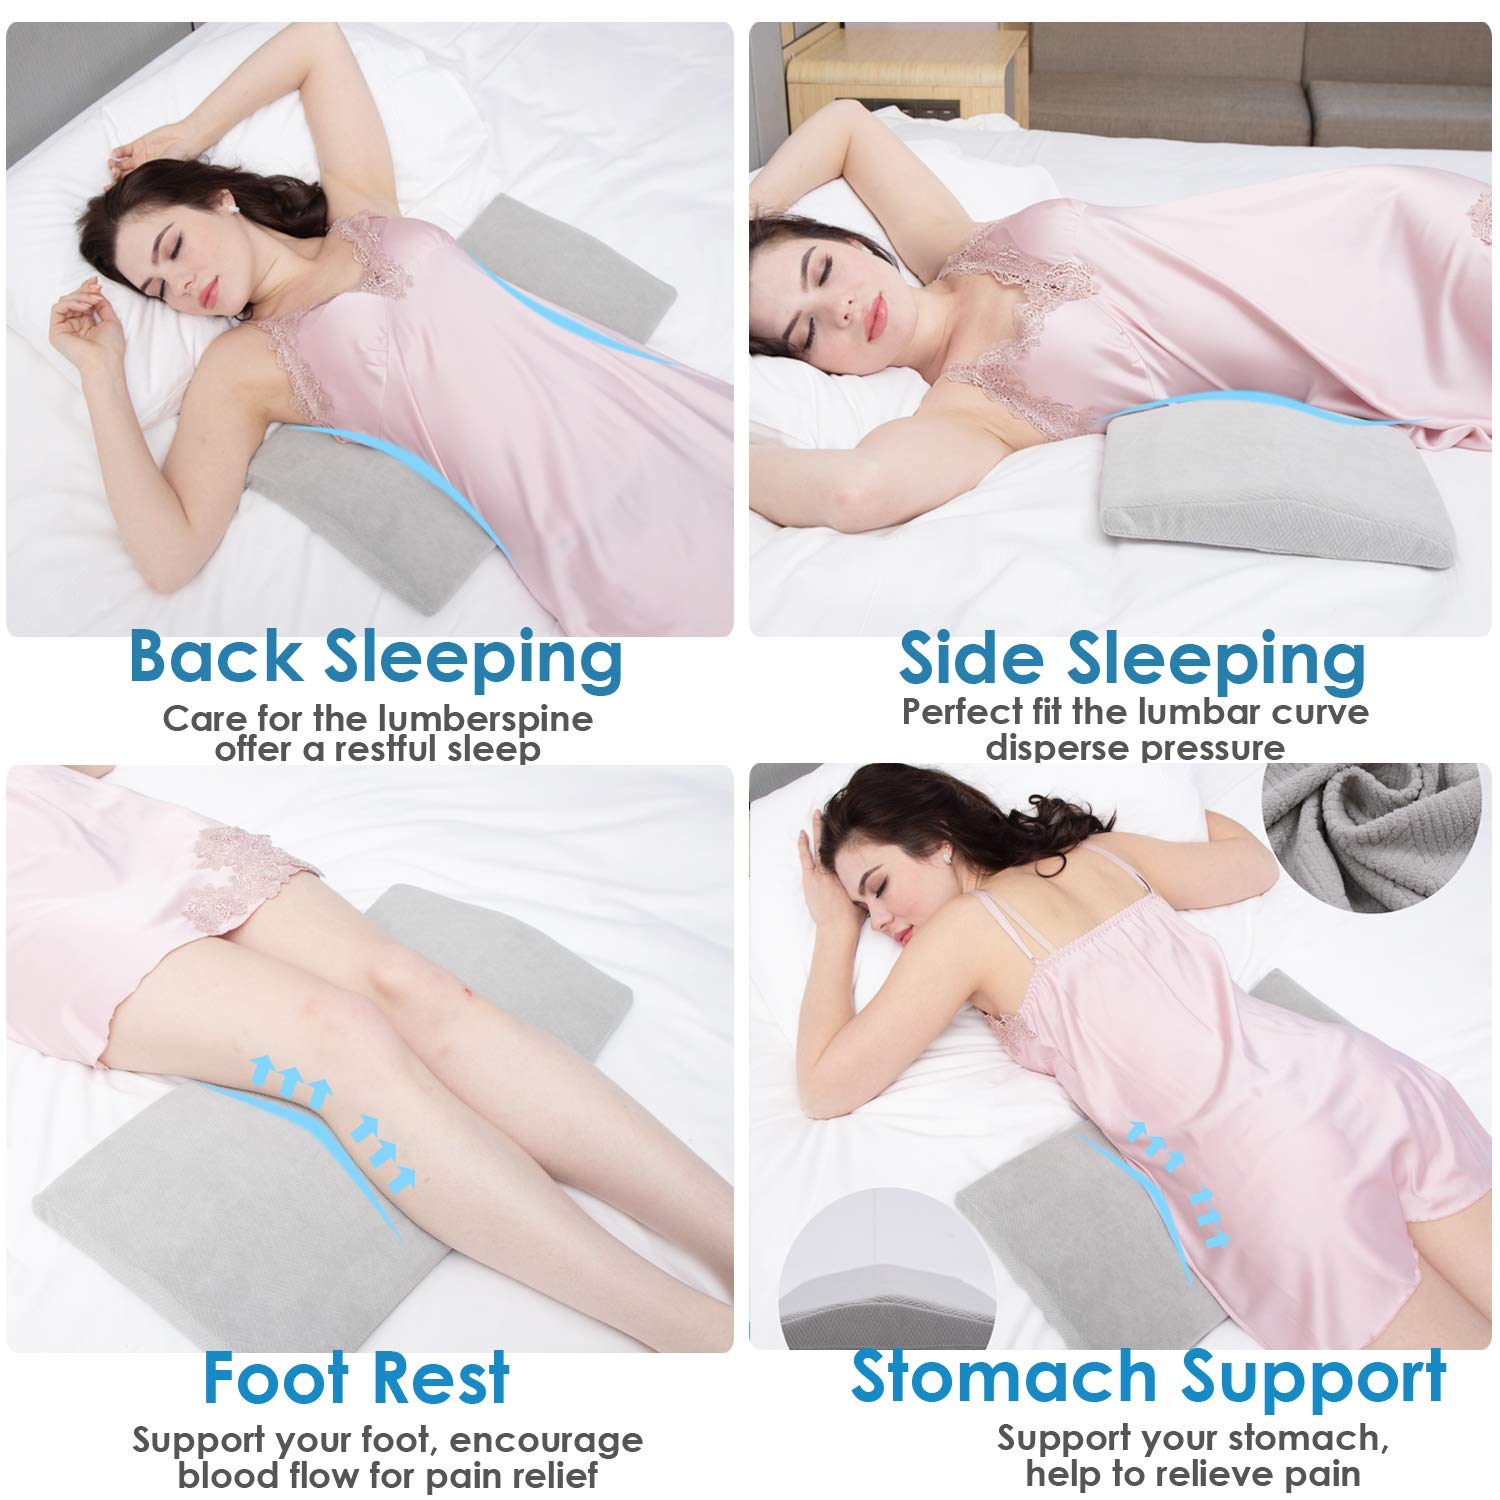 Amazon.com: Lumbar Pillow for Sleeping Back Pain - Soft Memory Foam  Sleeping Pillow for Lower Back Pain, Orthopedic Bed Cushion for Back & Side  Sleepers, Lumbar Support Cushion for Leg, Knee &